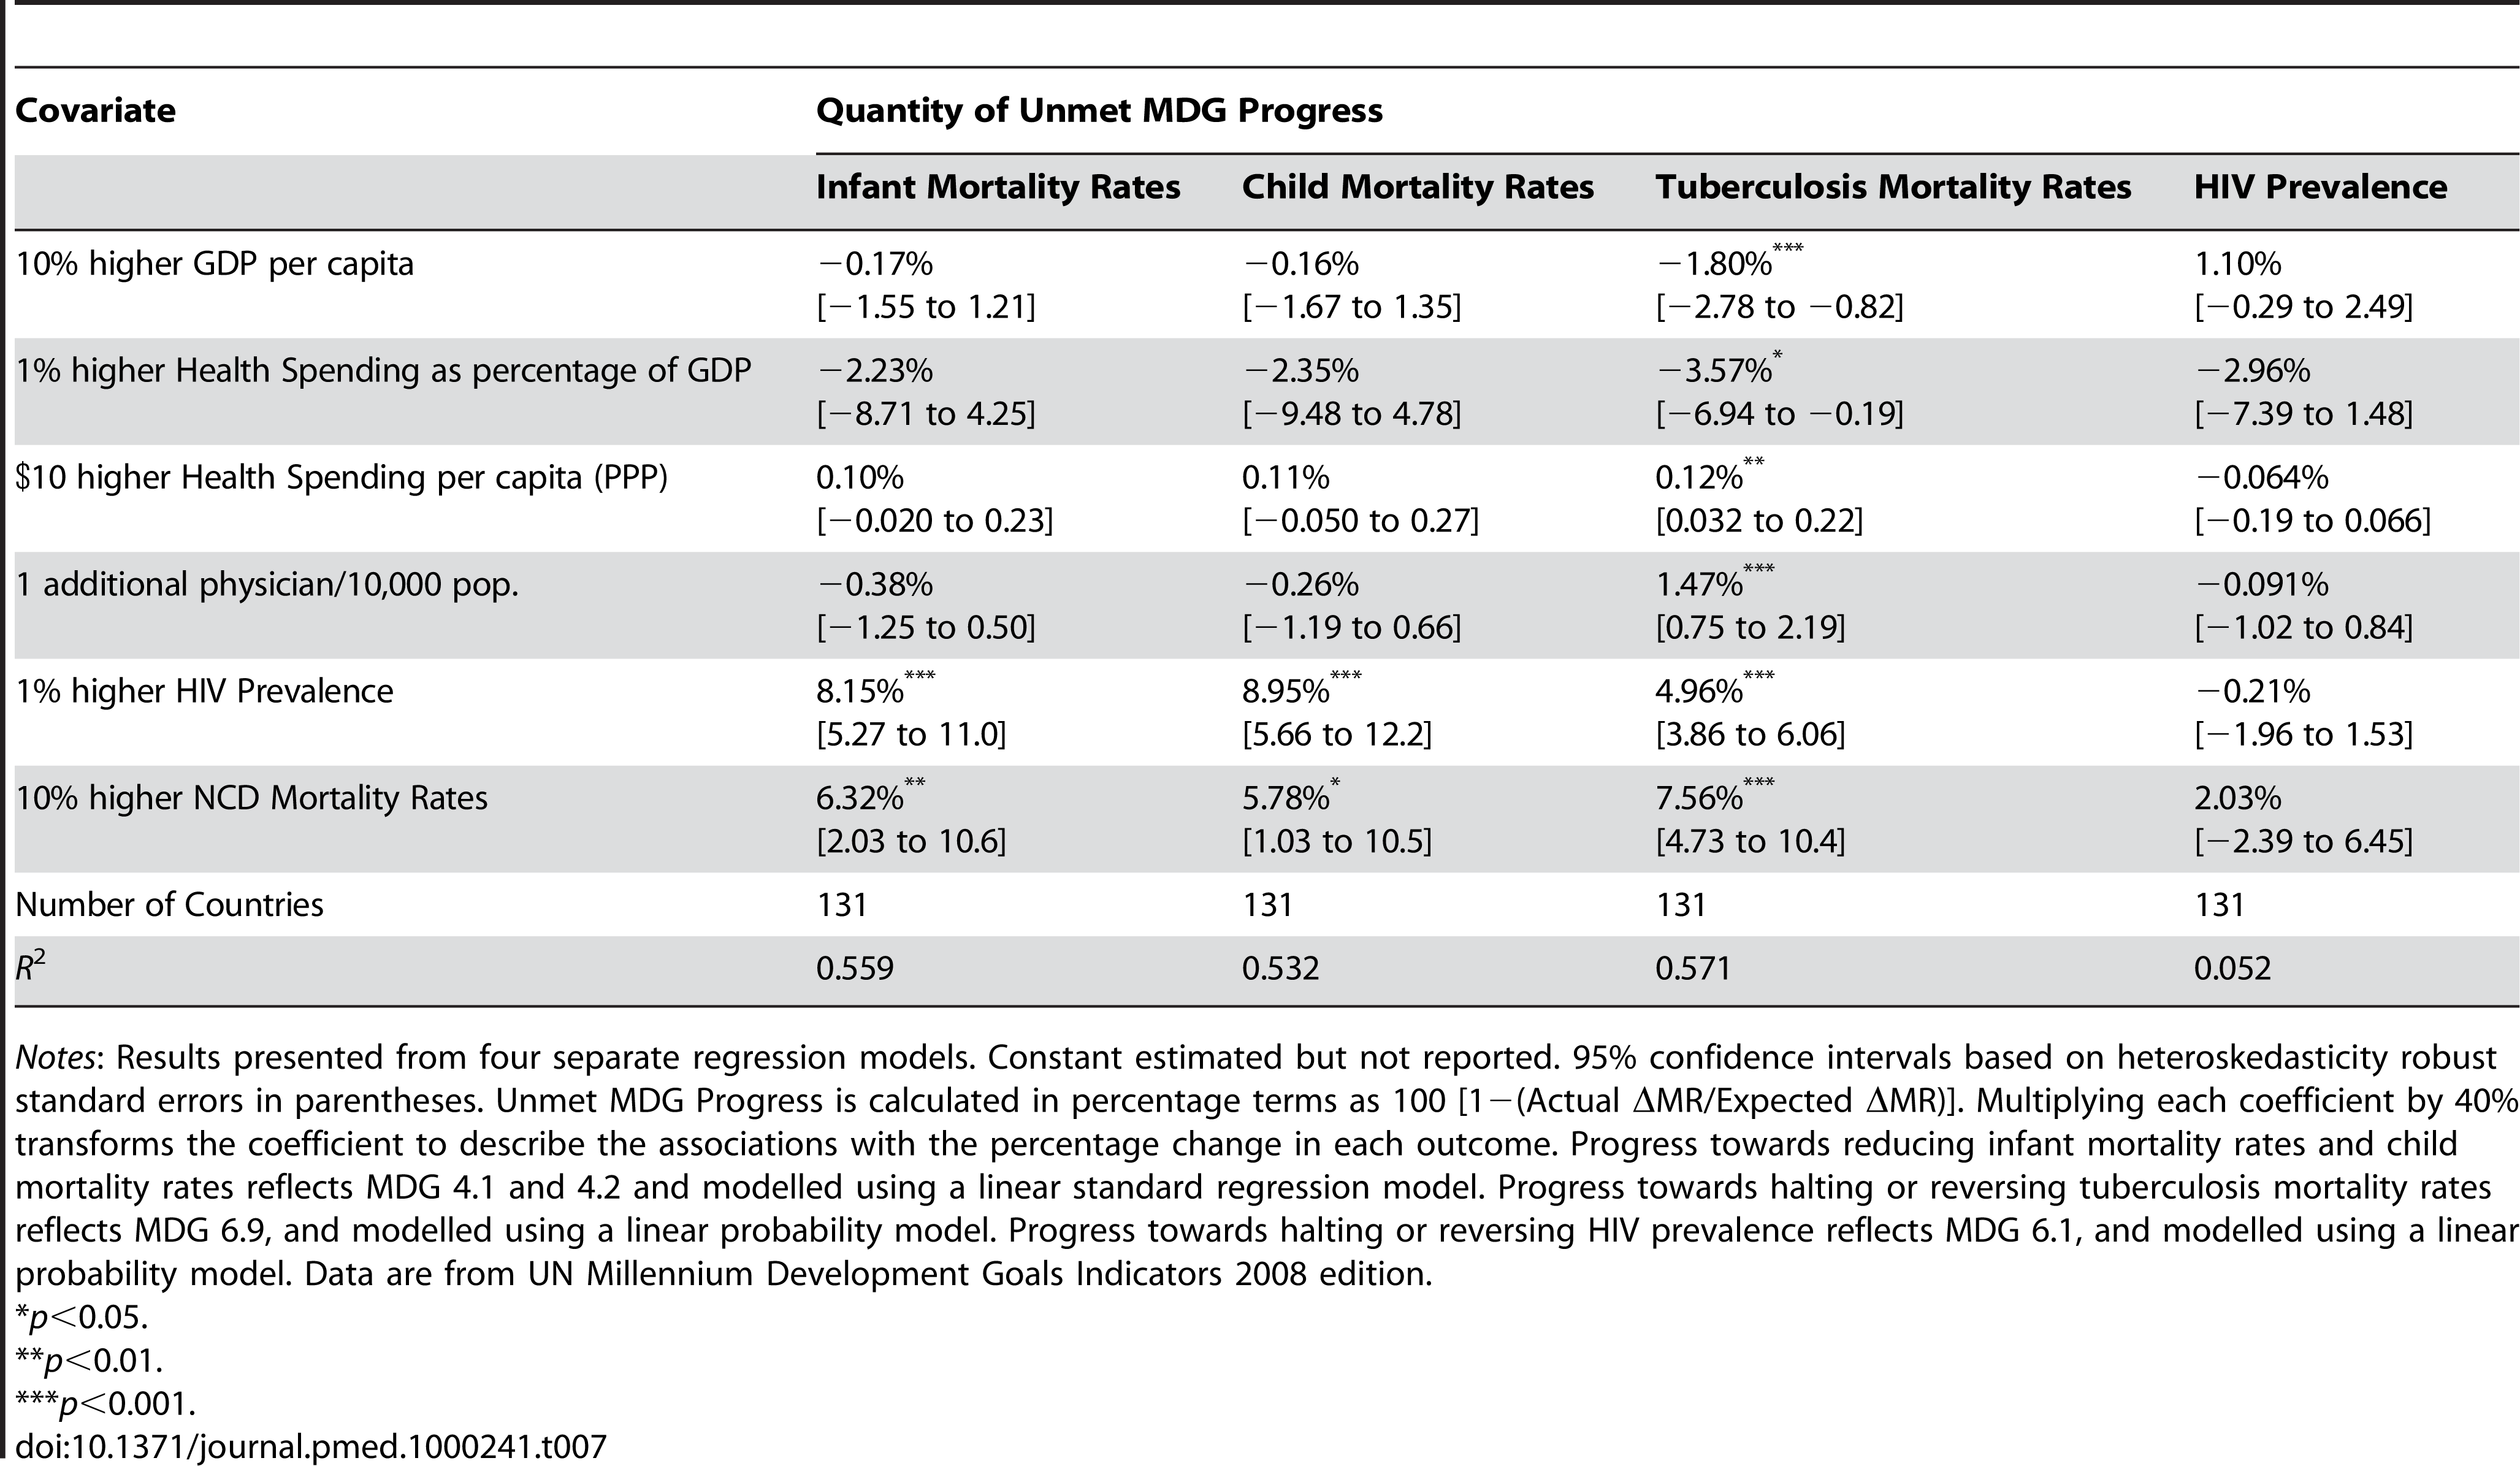 Associations of GDP per capita, health spending/GDP, health spending, physicians per capita, HIV prevalence, and NCD mortality rates with percentage of unmet progress toward health MDGs.